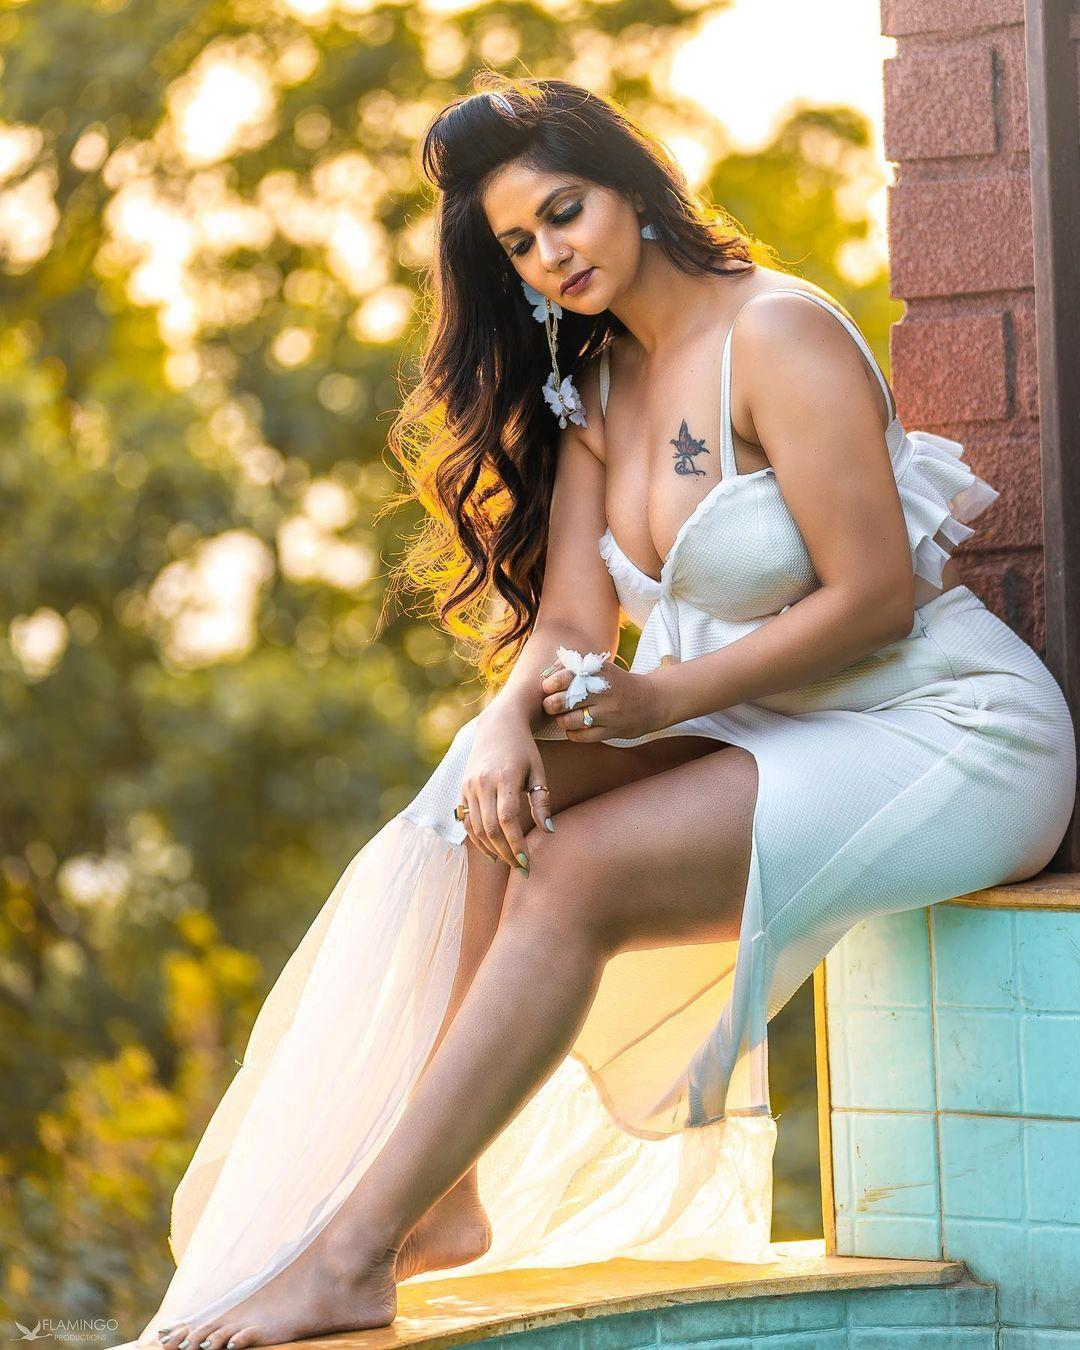 Bollywood Actress Hot Gallery Aabha Paul Very Bold And Hot Photos Photos Hd Images Pictures Stills First Look Posters Of Bollywood Actress Hot Gallery Aabha Paul Very Bold And Hot